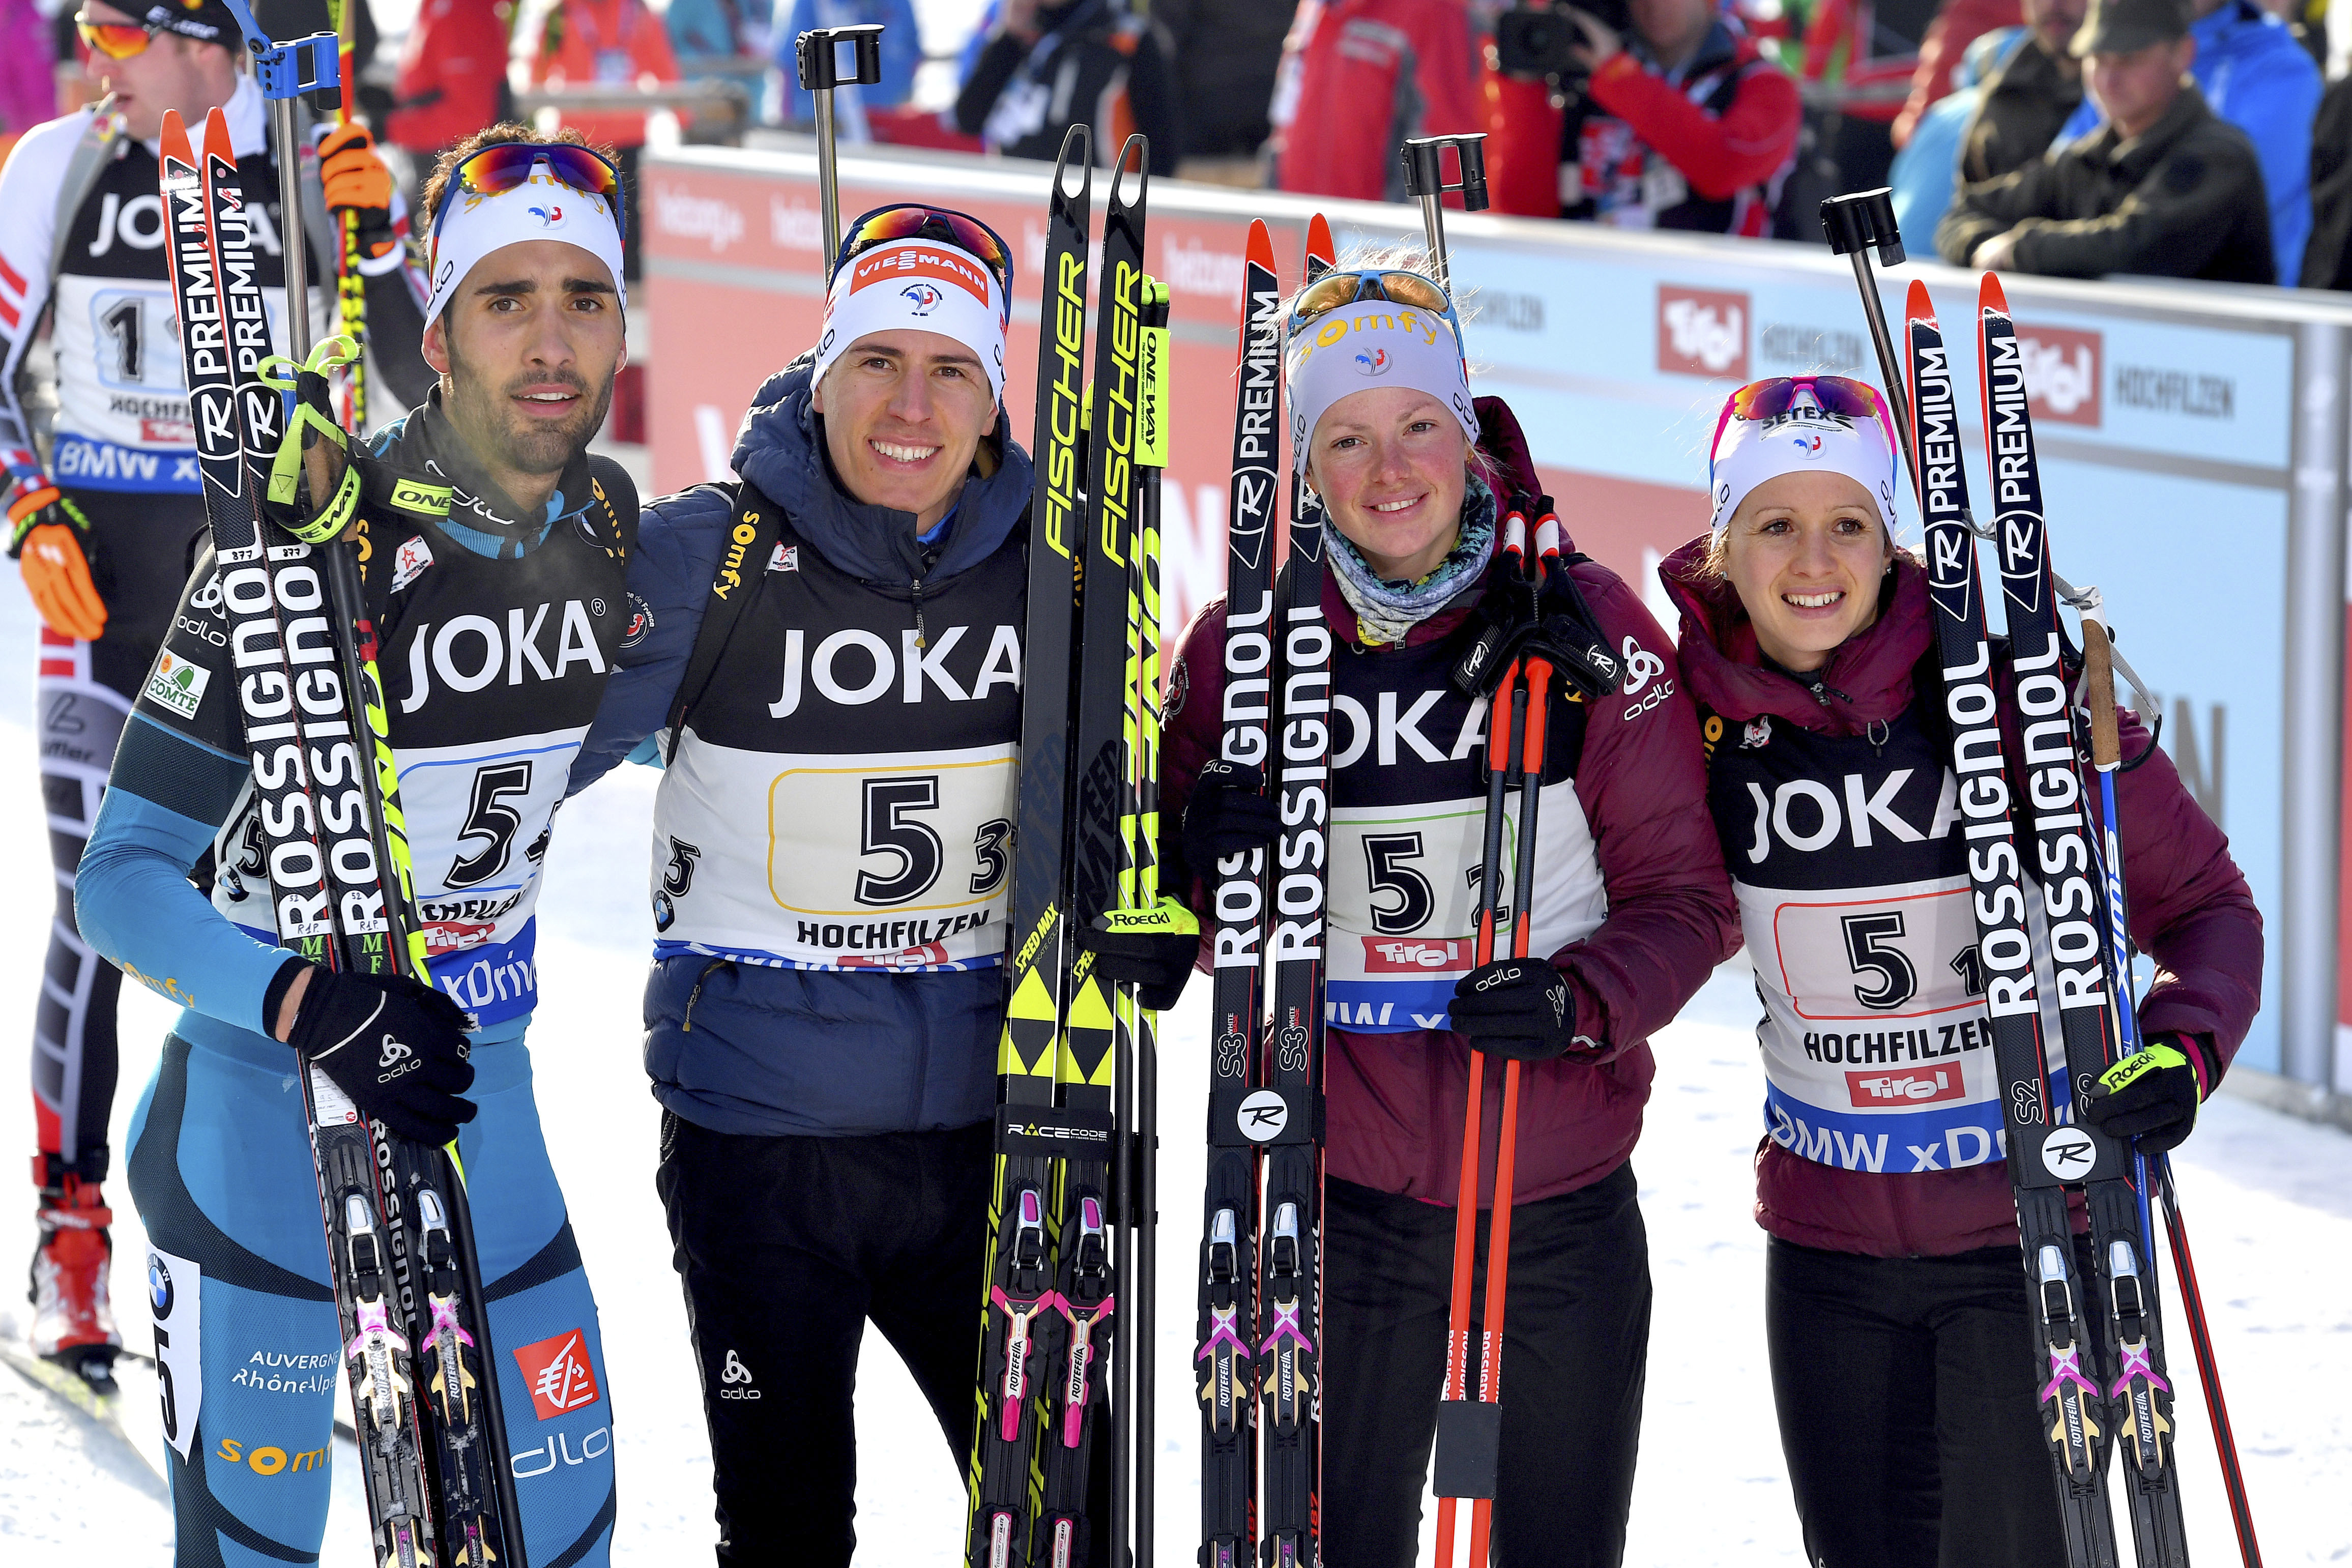 France's second placed  team with from left : Martin Fourcade,  Quentin Fillon Maillet, Marie Dorin Habert and Anais Chevalier pose for media after the Mixed relay competition of the Biathlon World Championships in Hochfilzen, Austria, Thursday, Feb. 9, 2